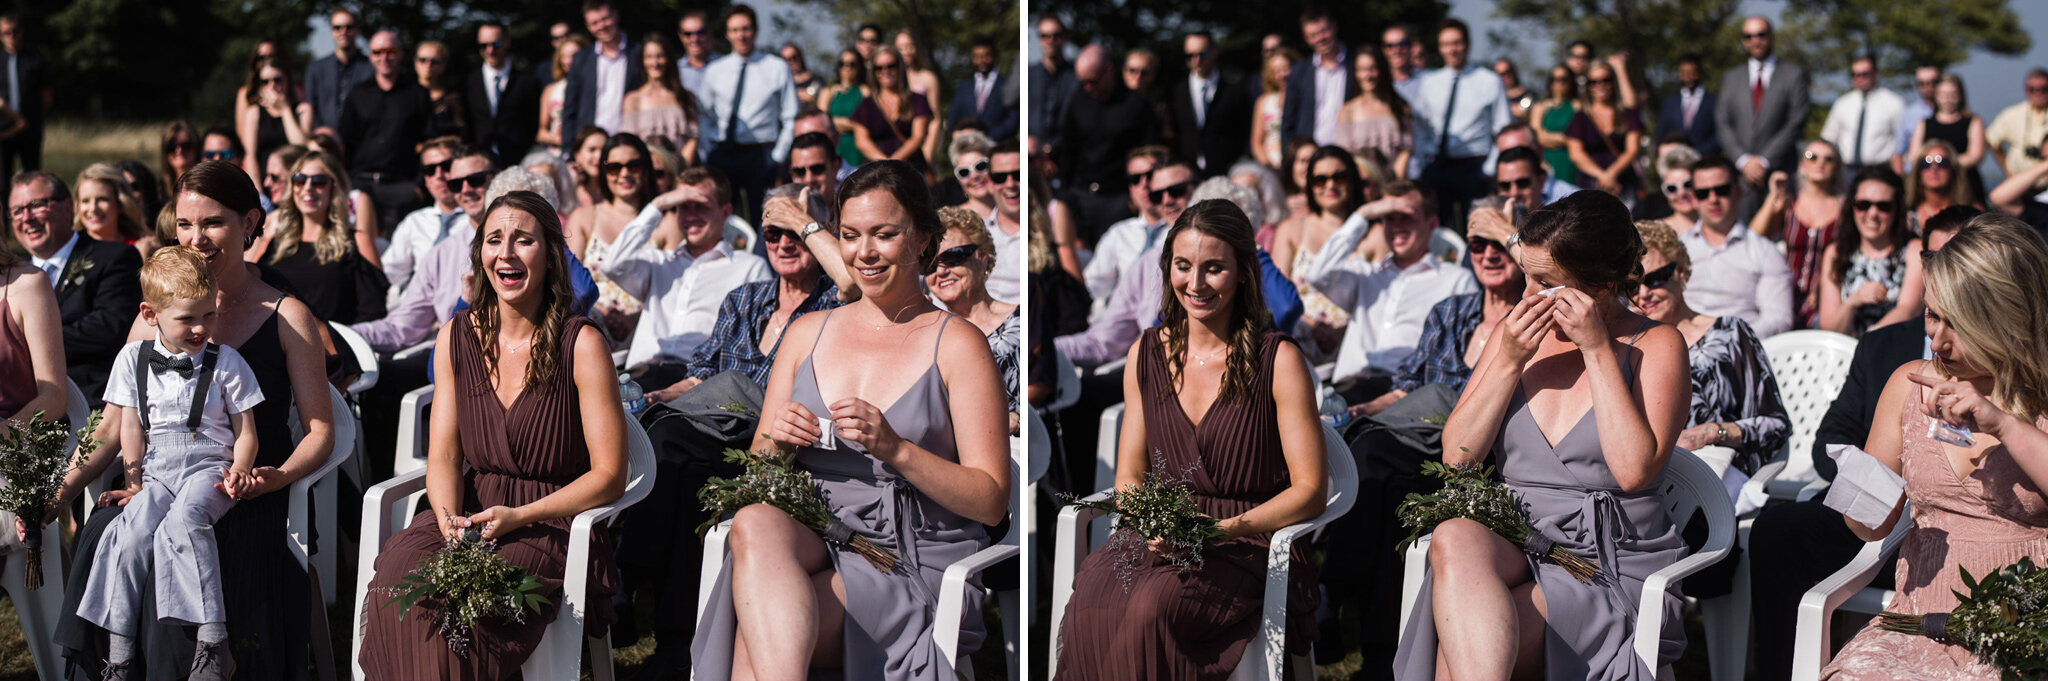 204-bridesmaids-reactions-wedding-ceremony-photos-st-andrews-by-the-sea-ministers-island.jpg